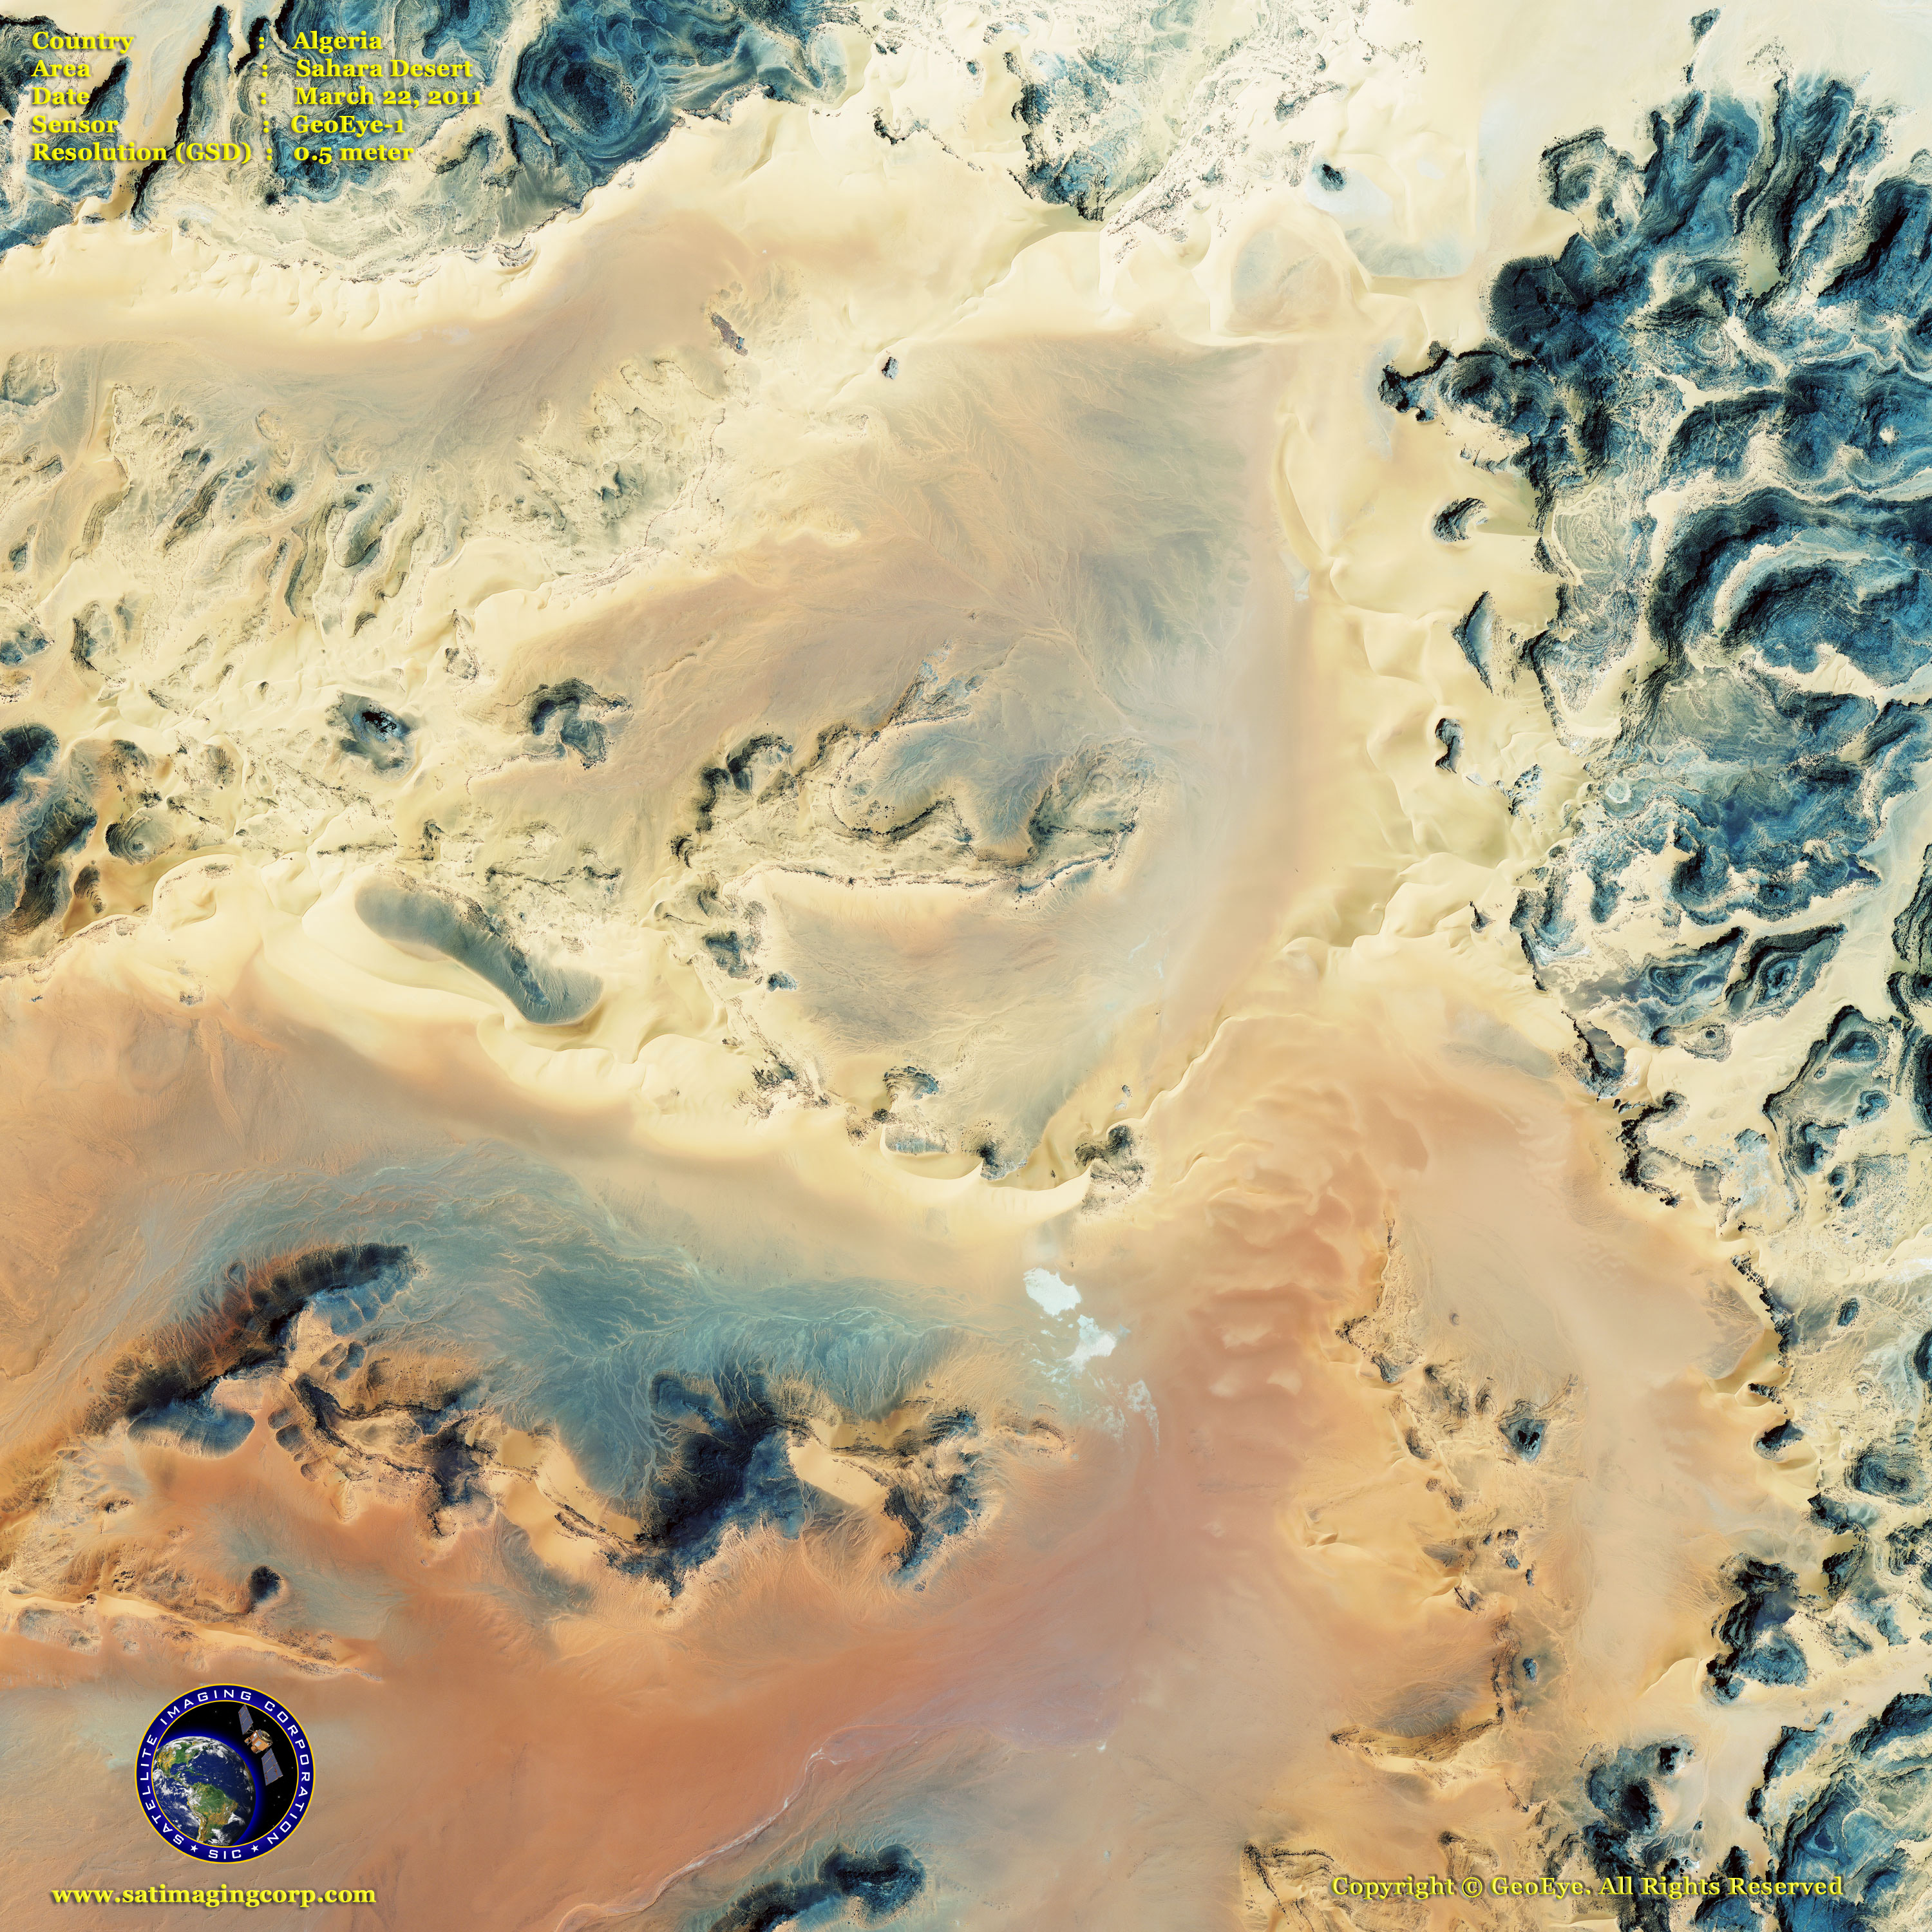 Middle East Map of the Sahara Desert Satellite Imaging Corp